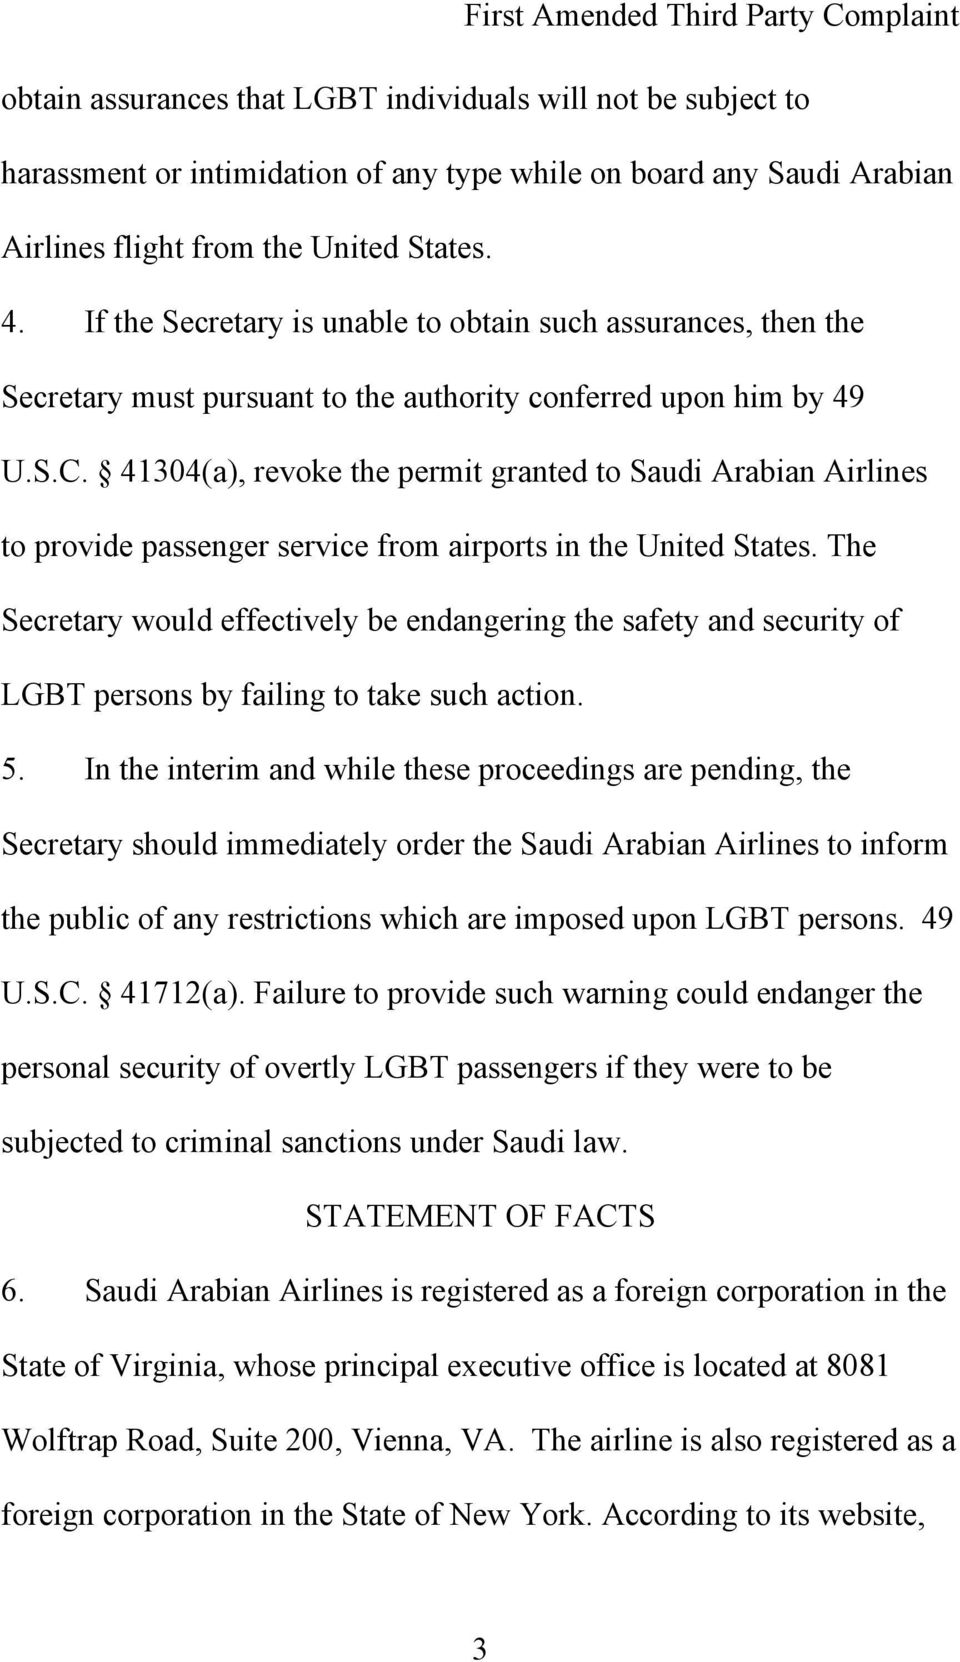 41304(a), revoke the permit granted to Saudi Arabian Airlines to provide passenger service from airports in the United States.